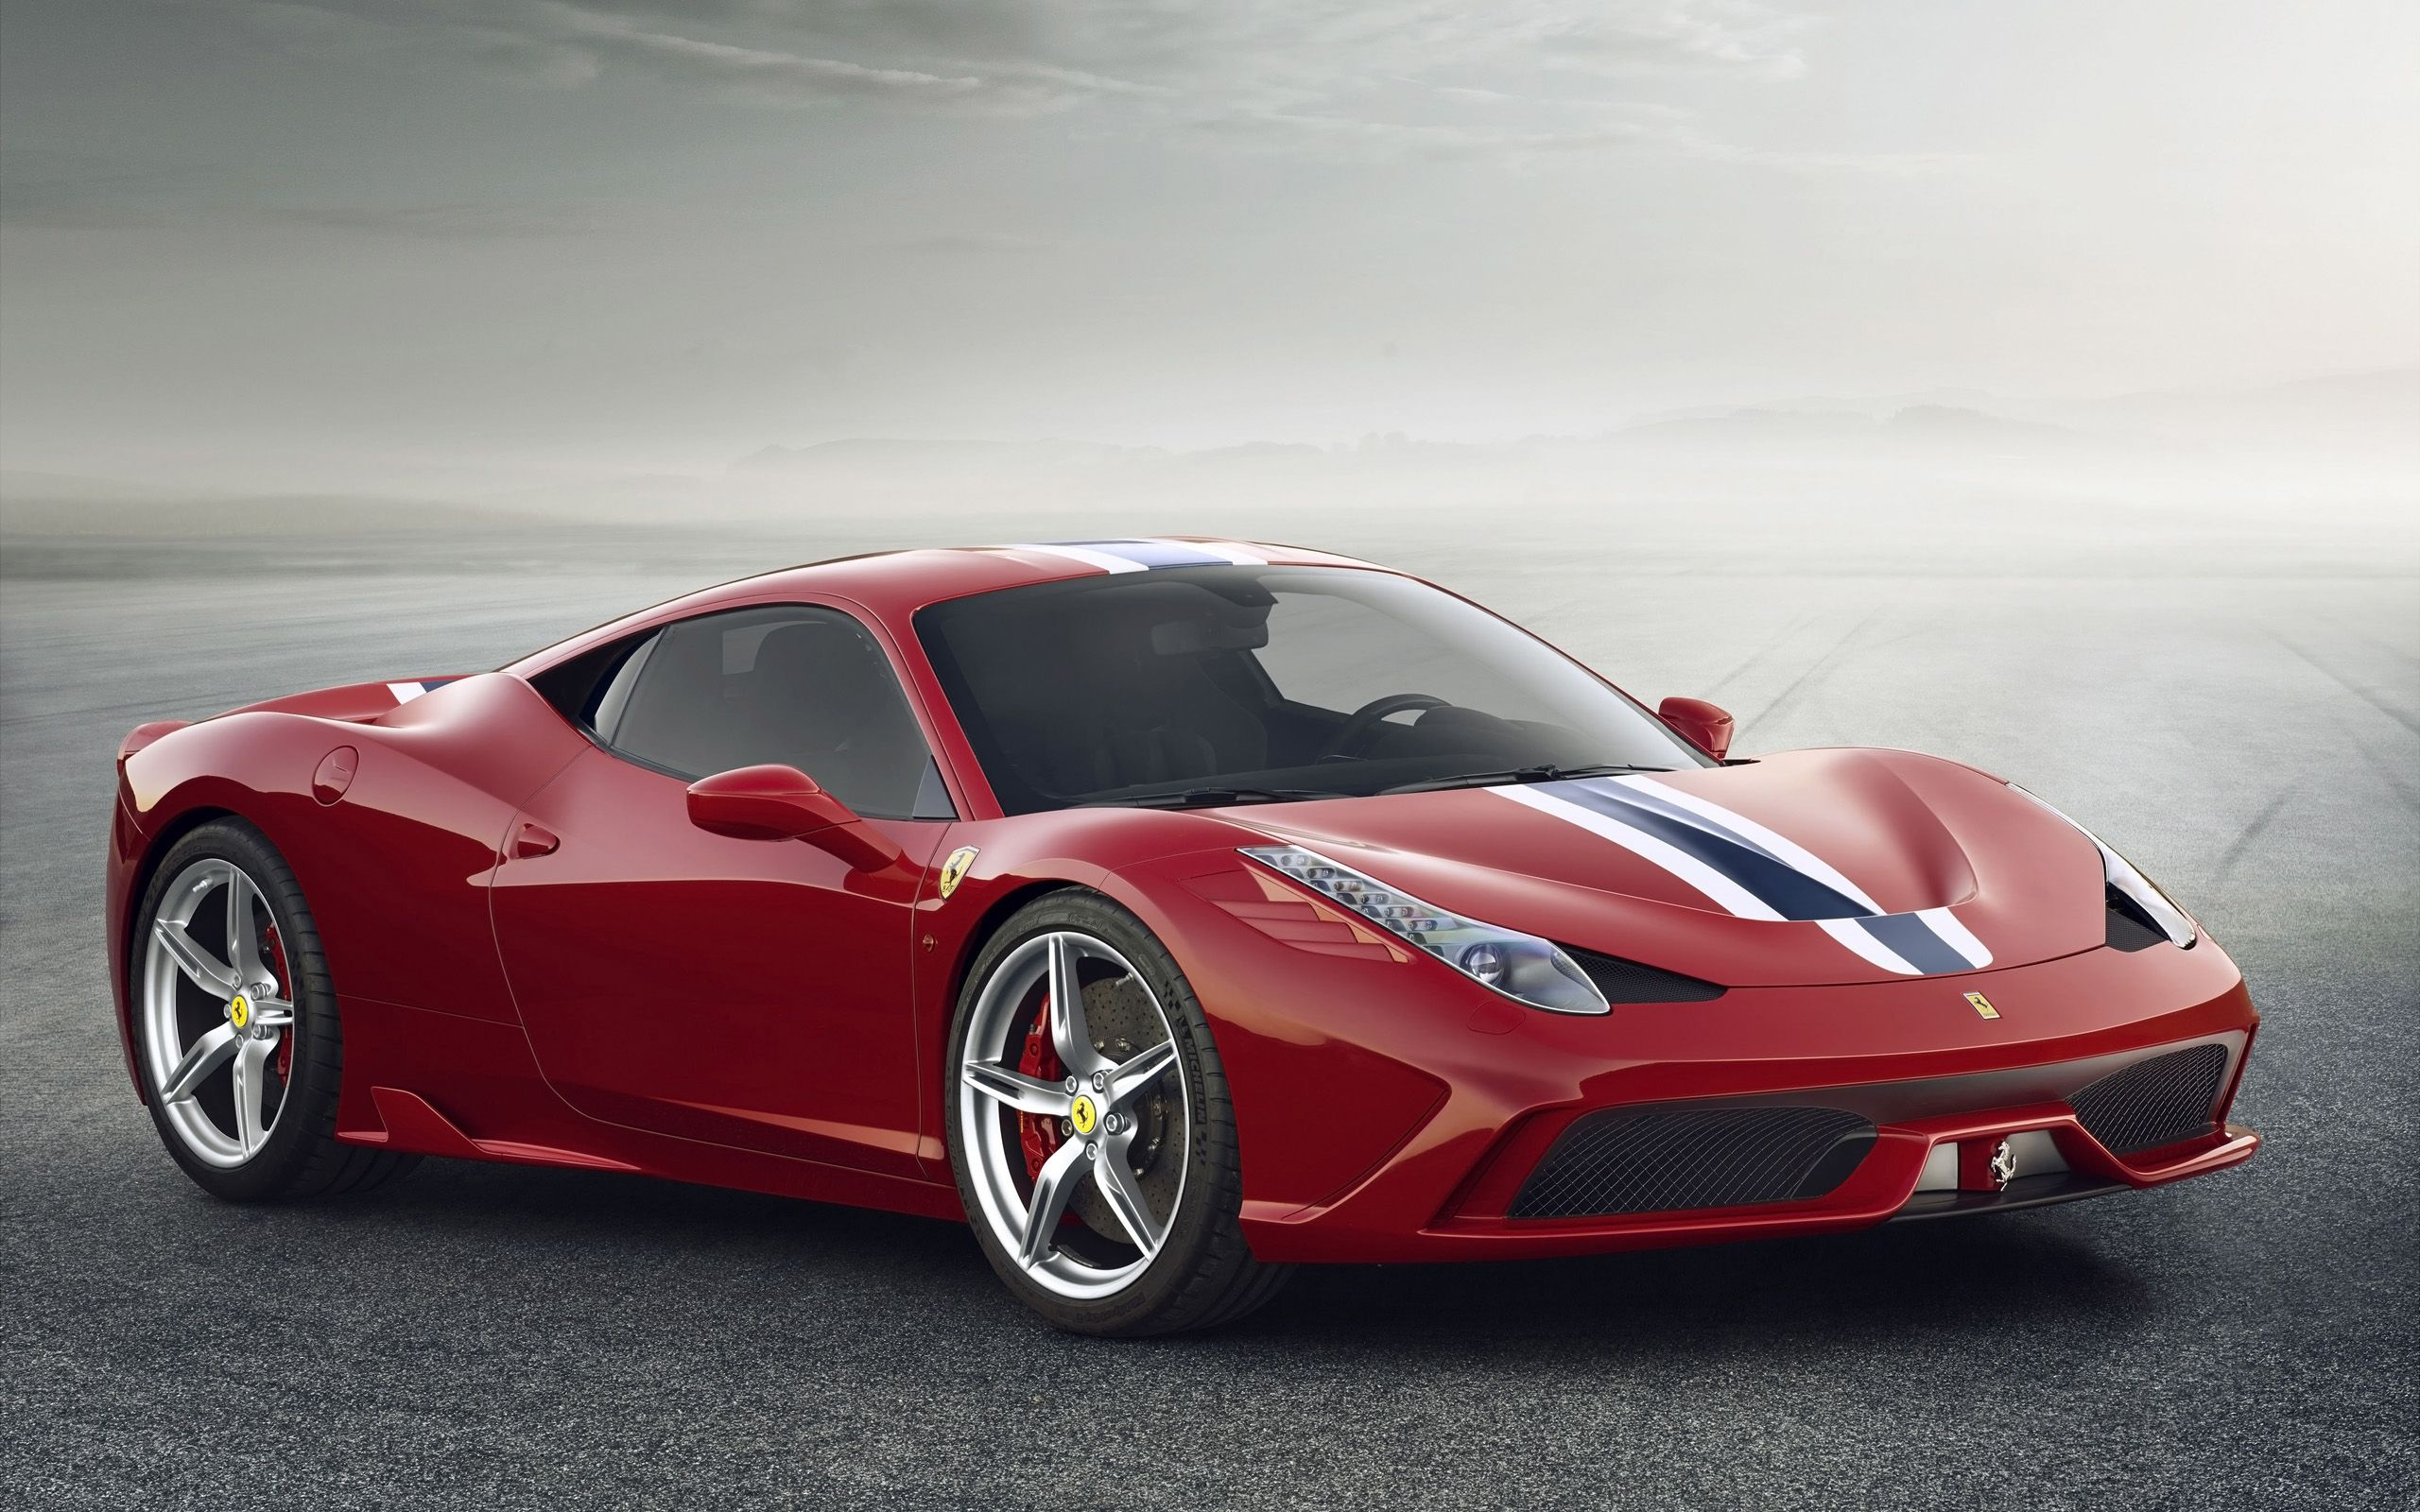 2014 Ferrari 458 Speciale Picture Hd Car Wallpaper Ferrari Car